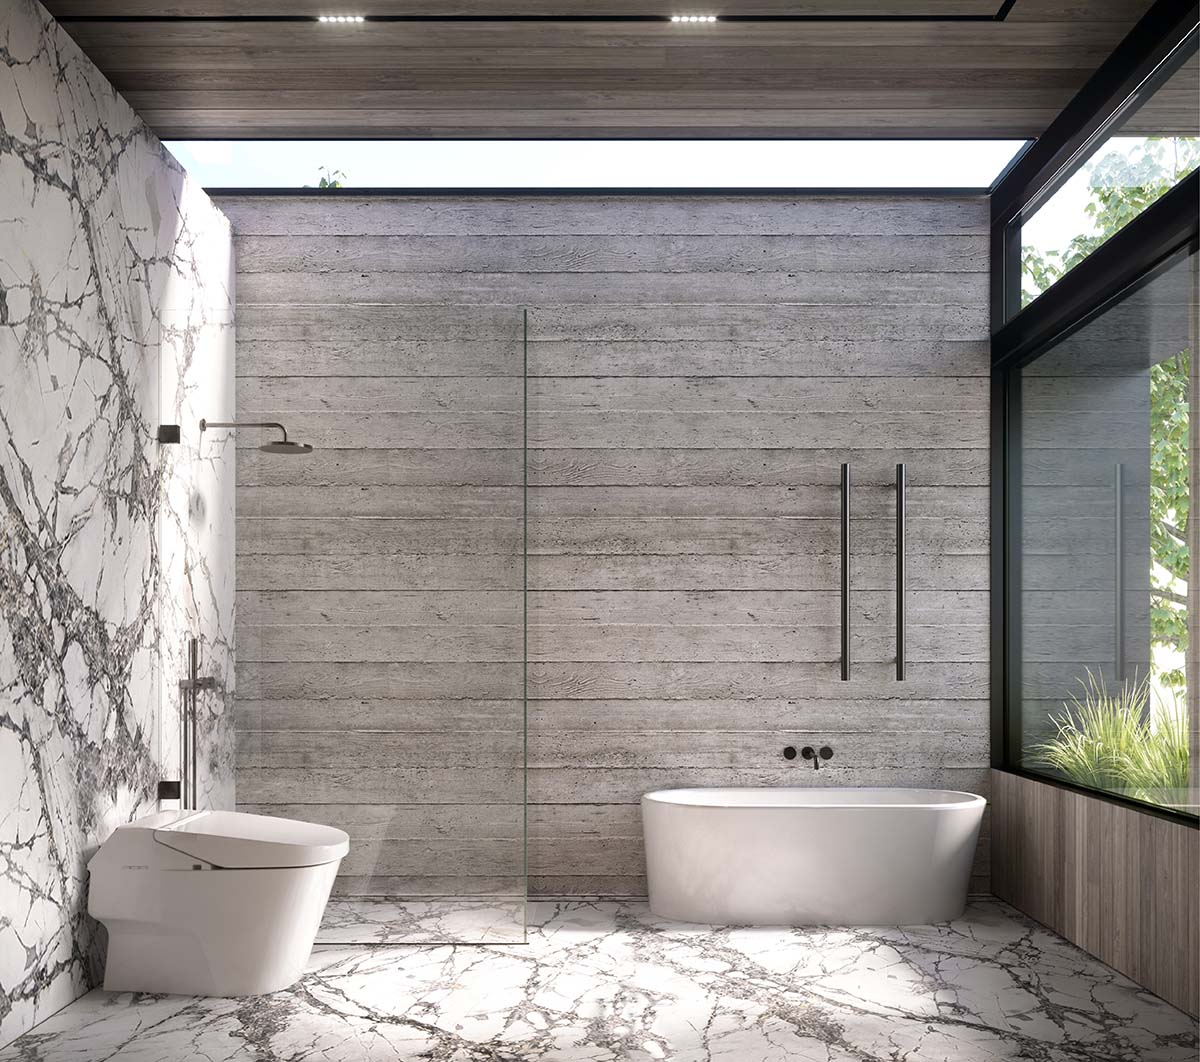 Bathroom with brutalist style blending stone and marble